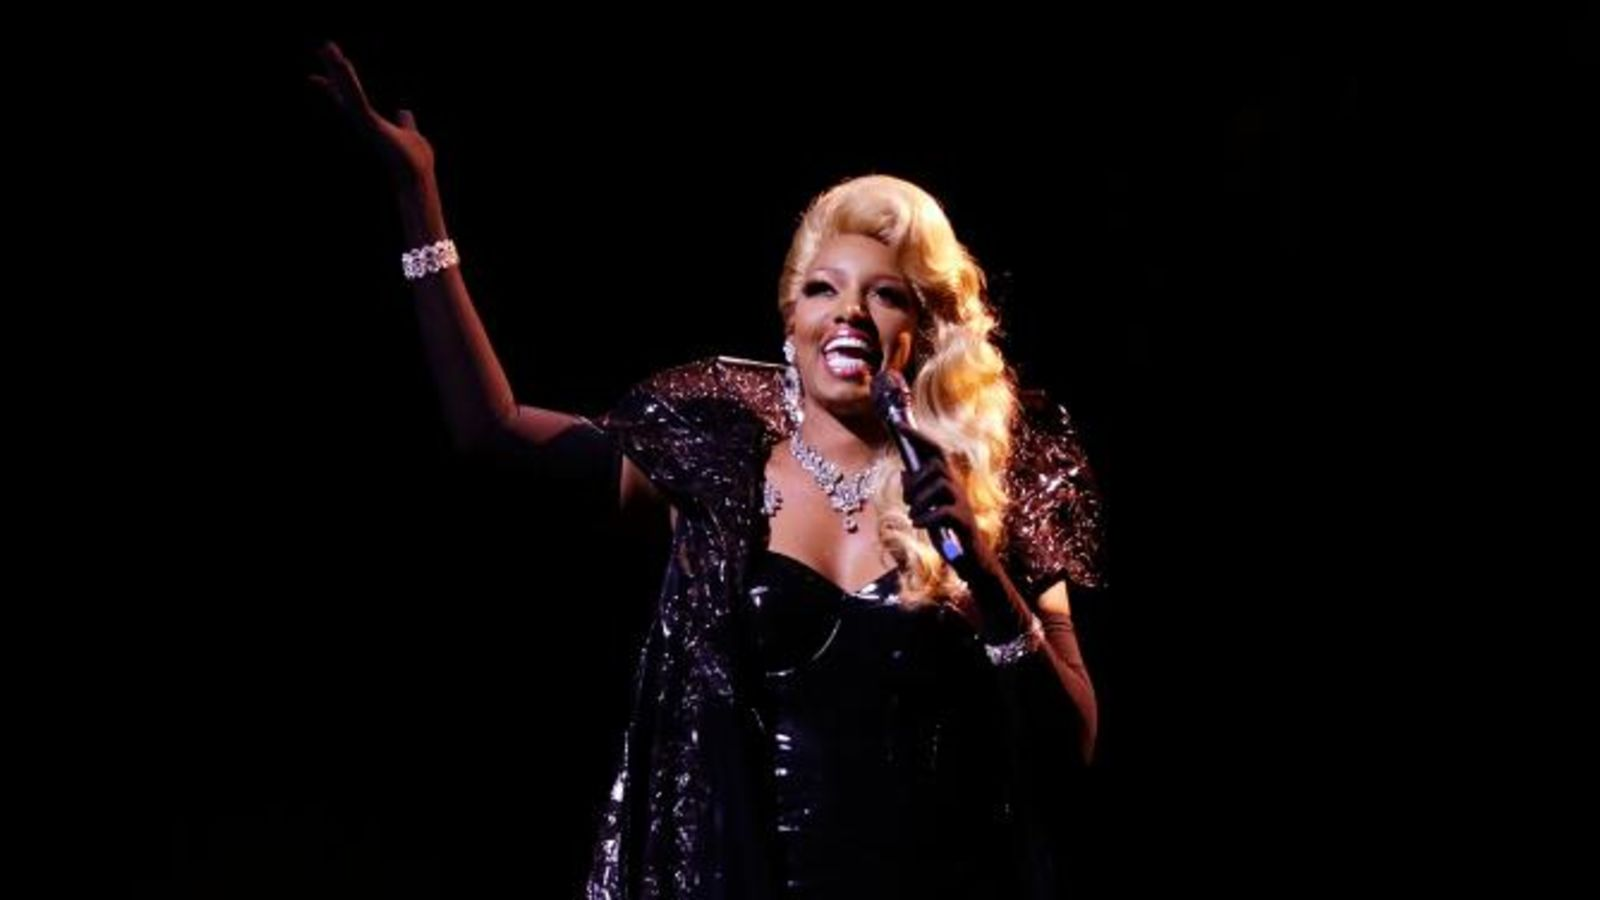 """nene-leakes-looks-drop-dead-gorgeous-on-the-runway-and-fans-cannot-wait-to-see-her-in-season-12-of-rhoa"""